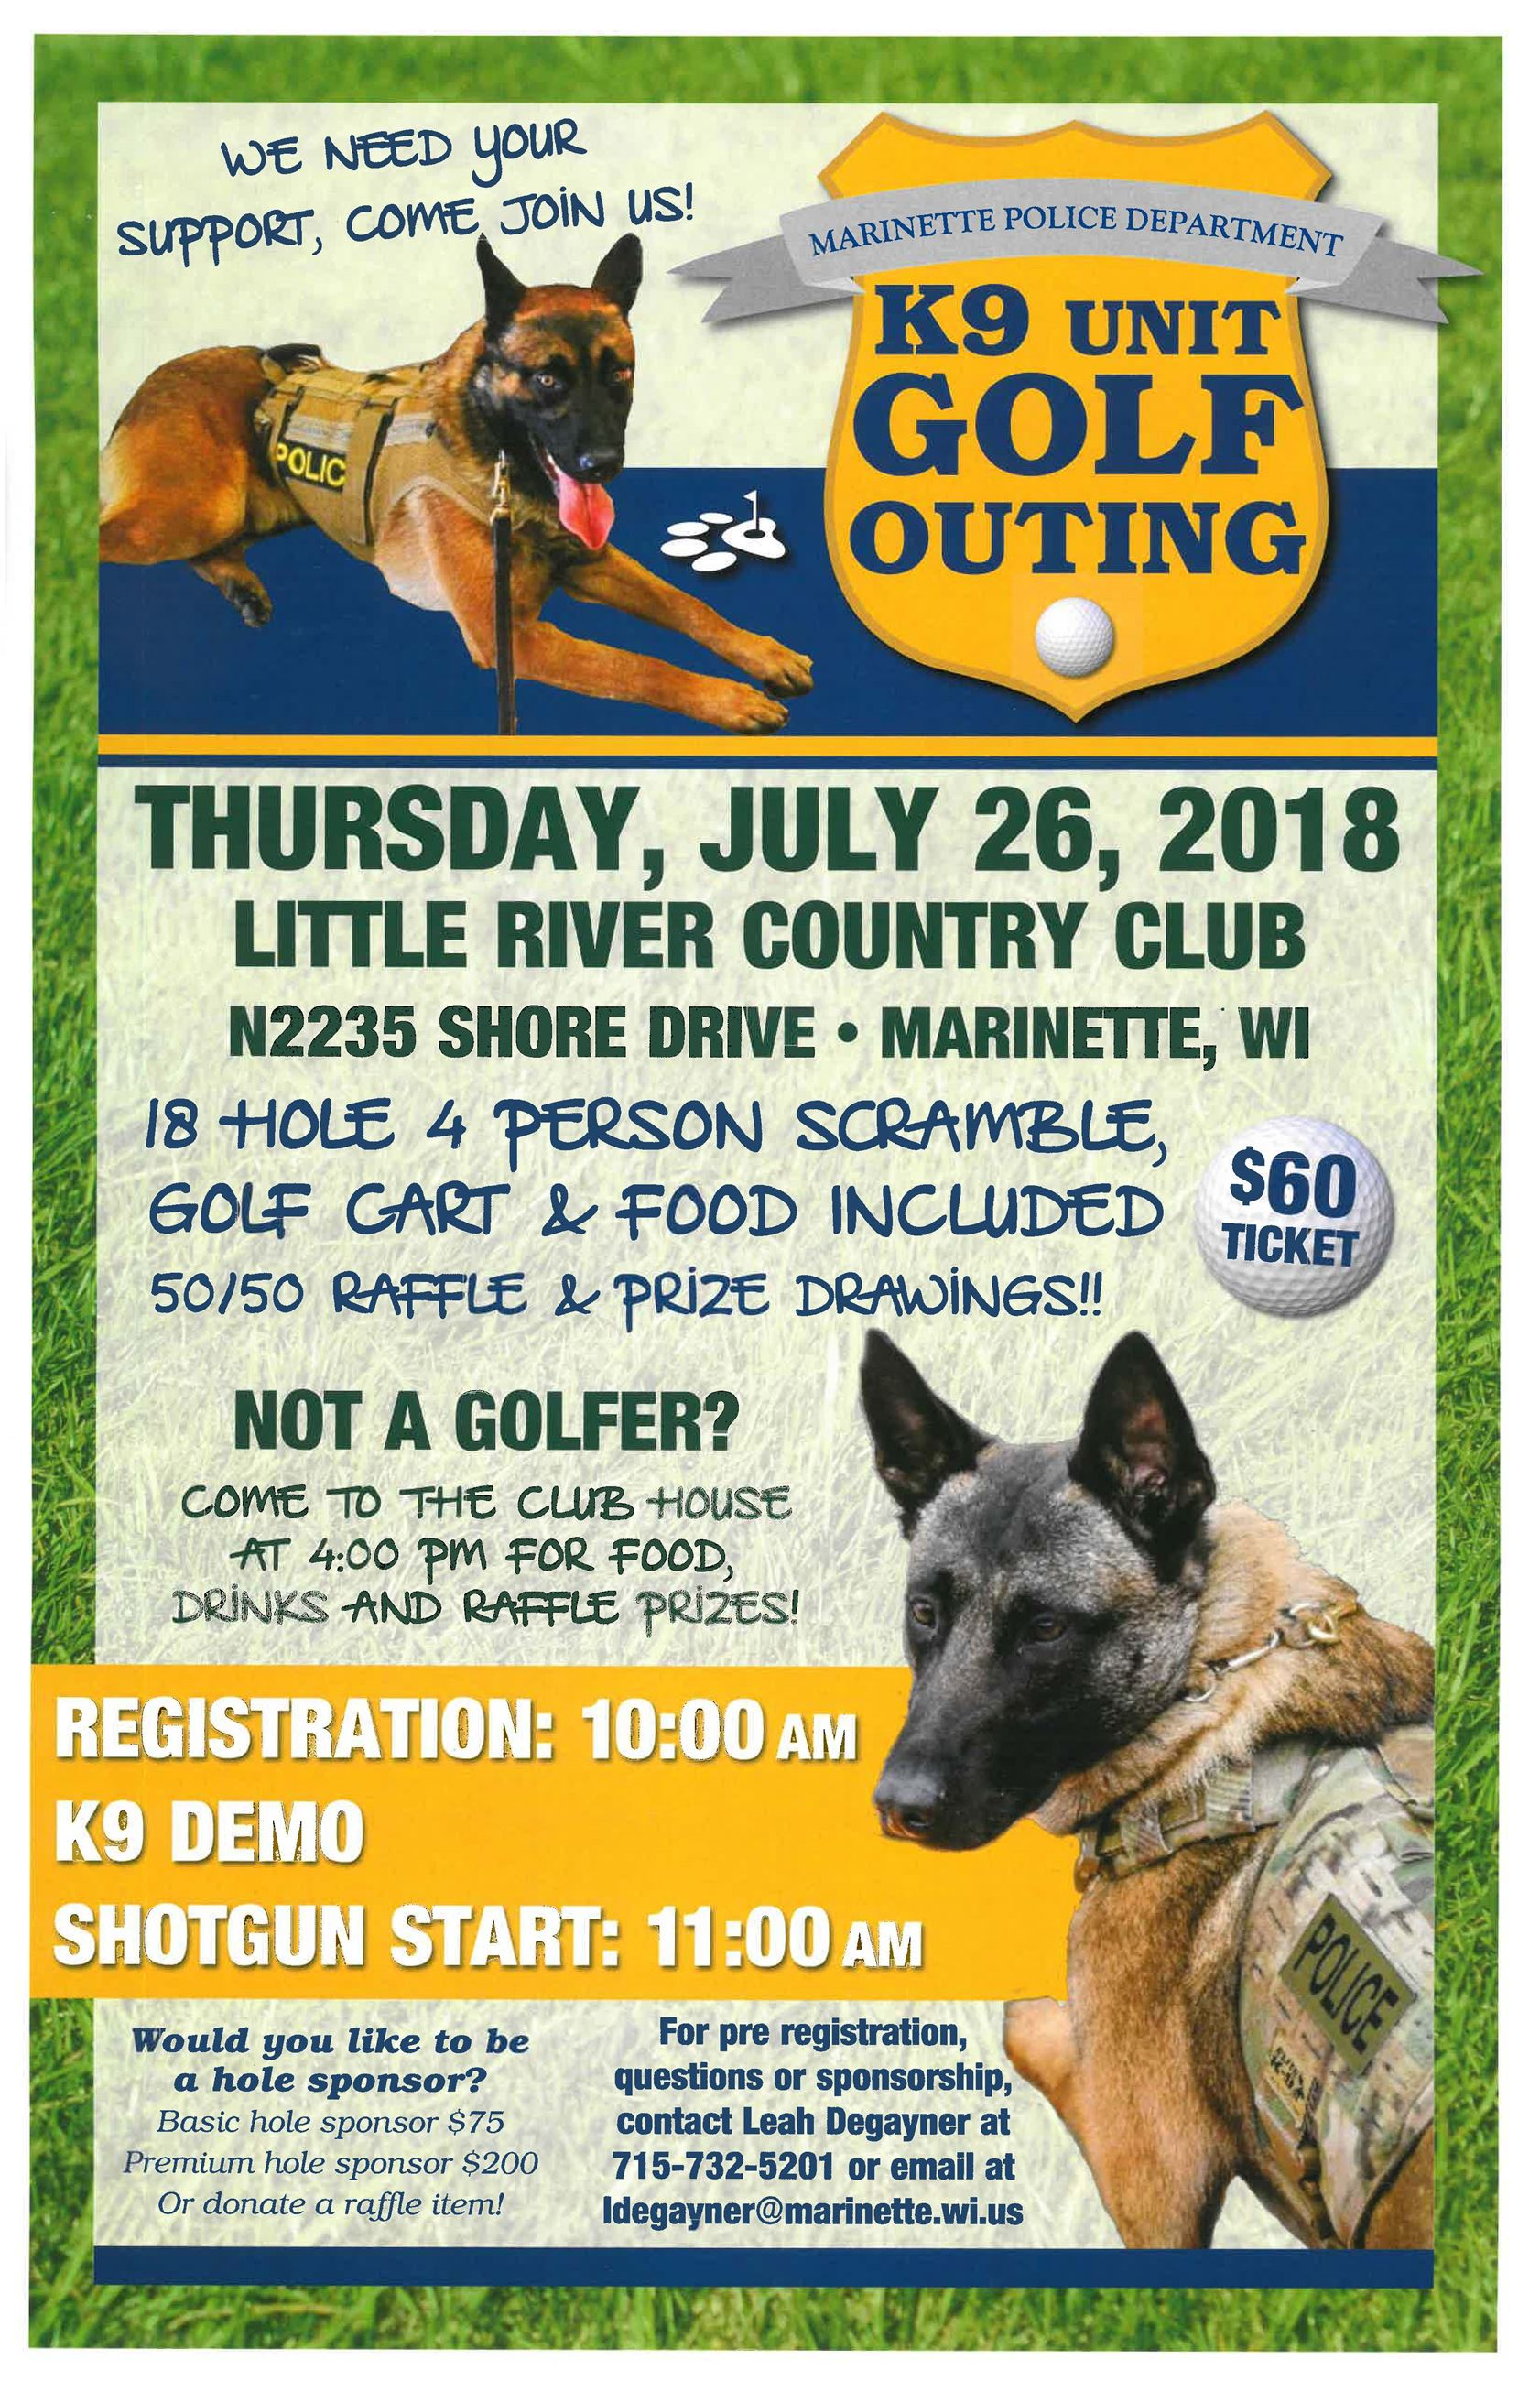 K9 Unit Golf Outing